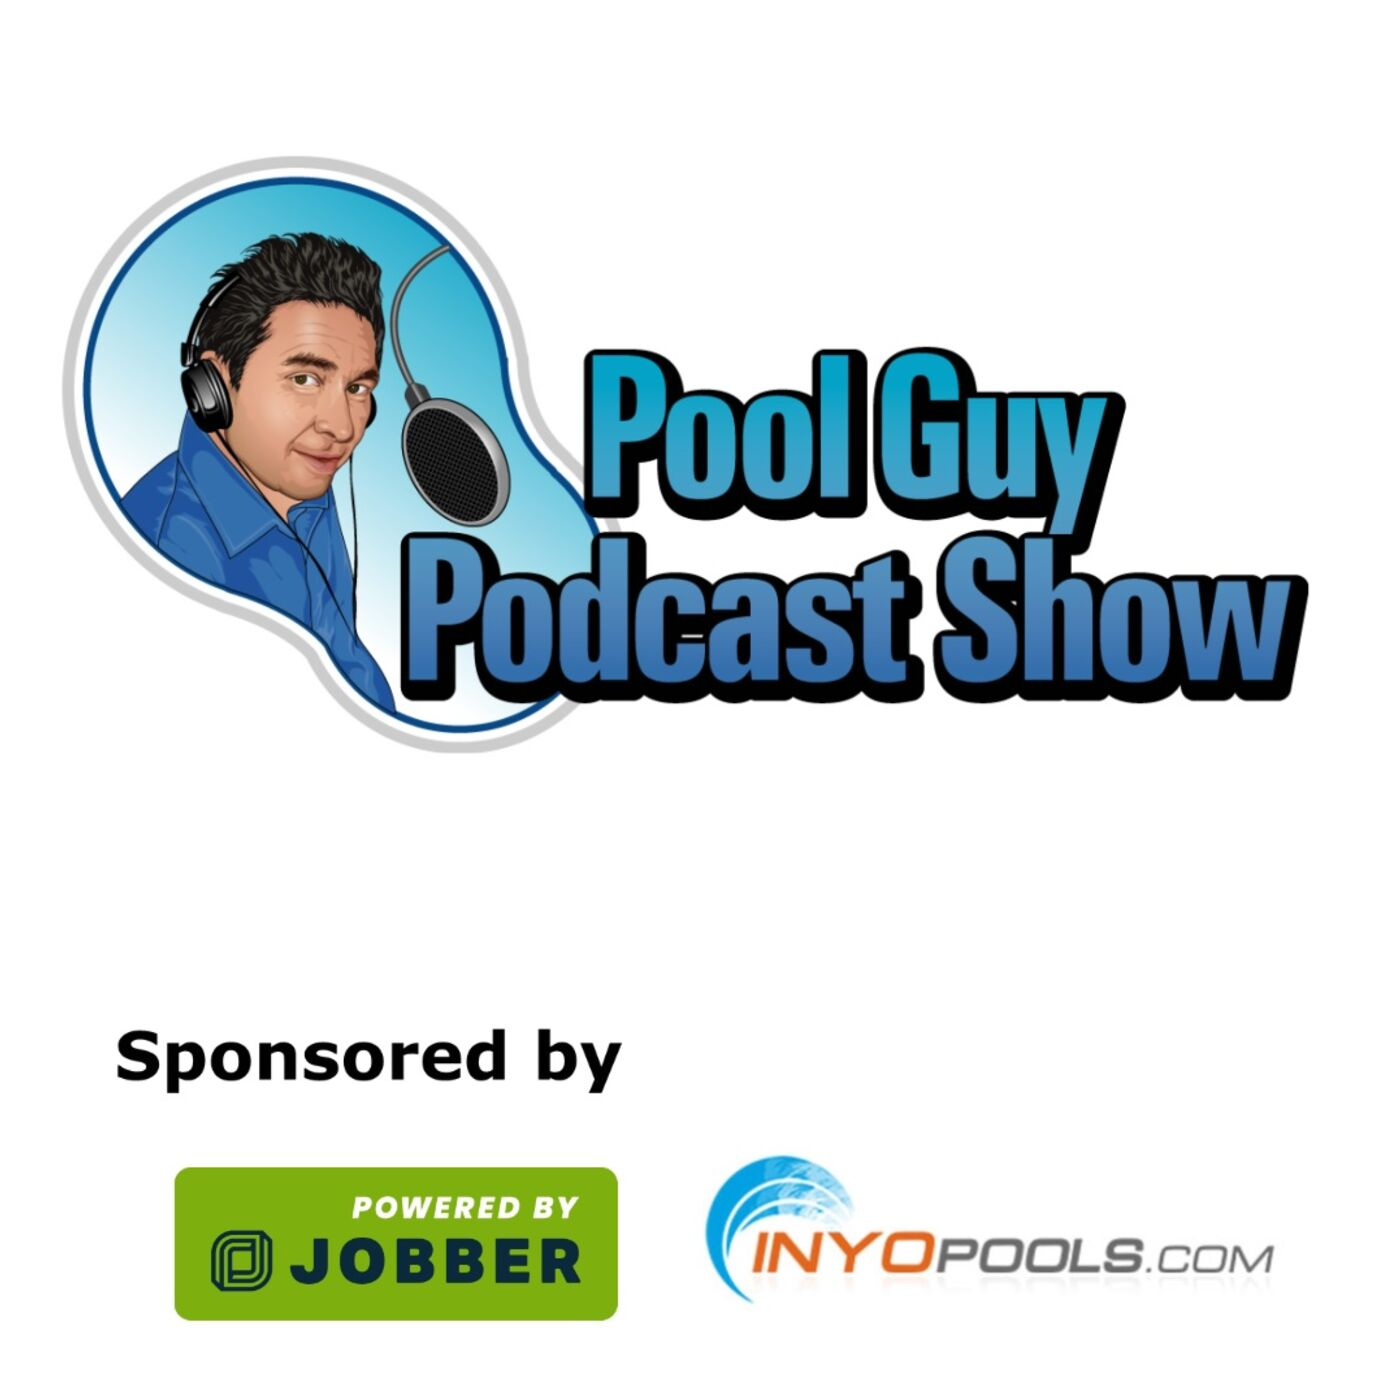 Zodiac Pool Care Europe the pool guy podcast show